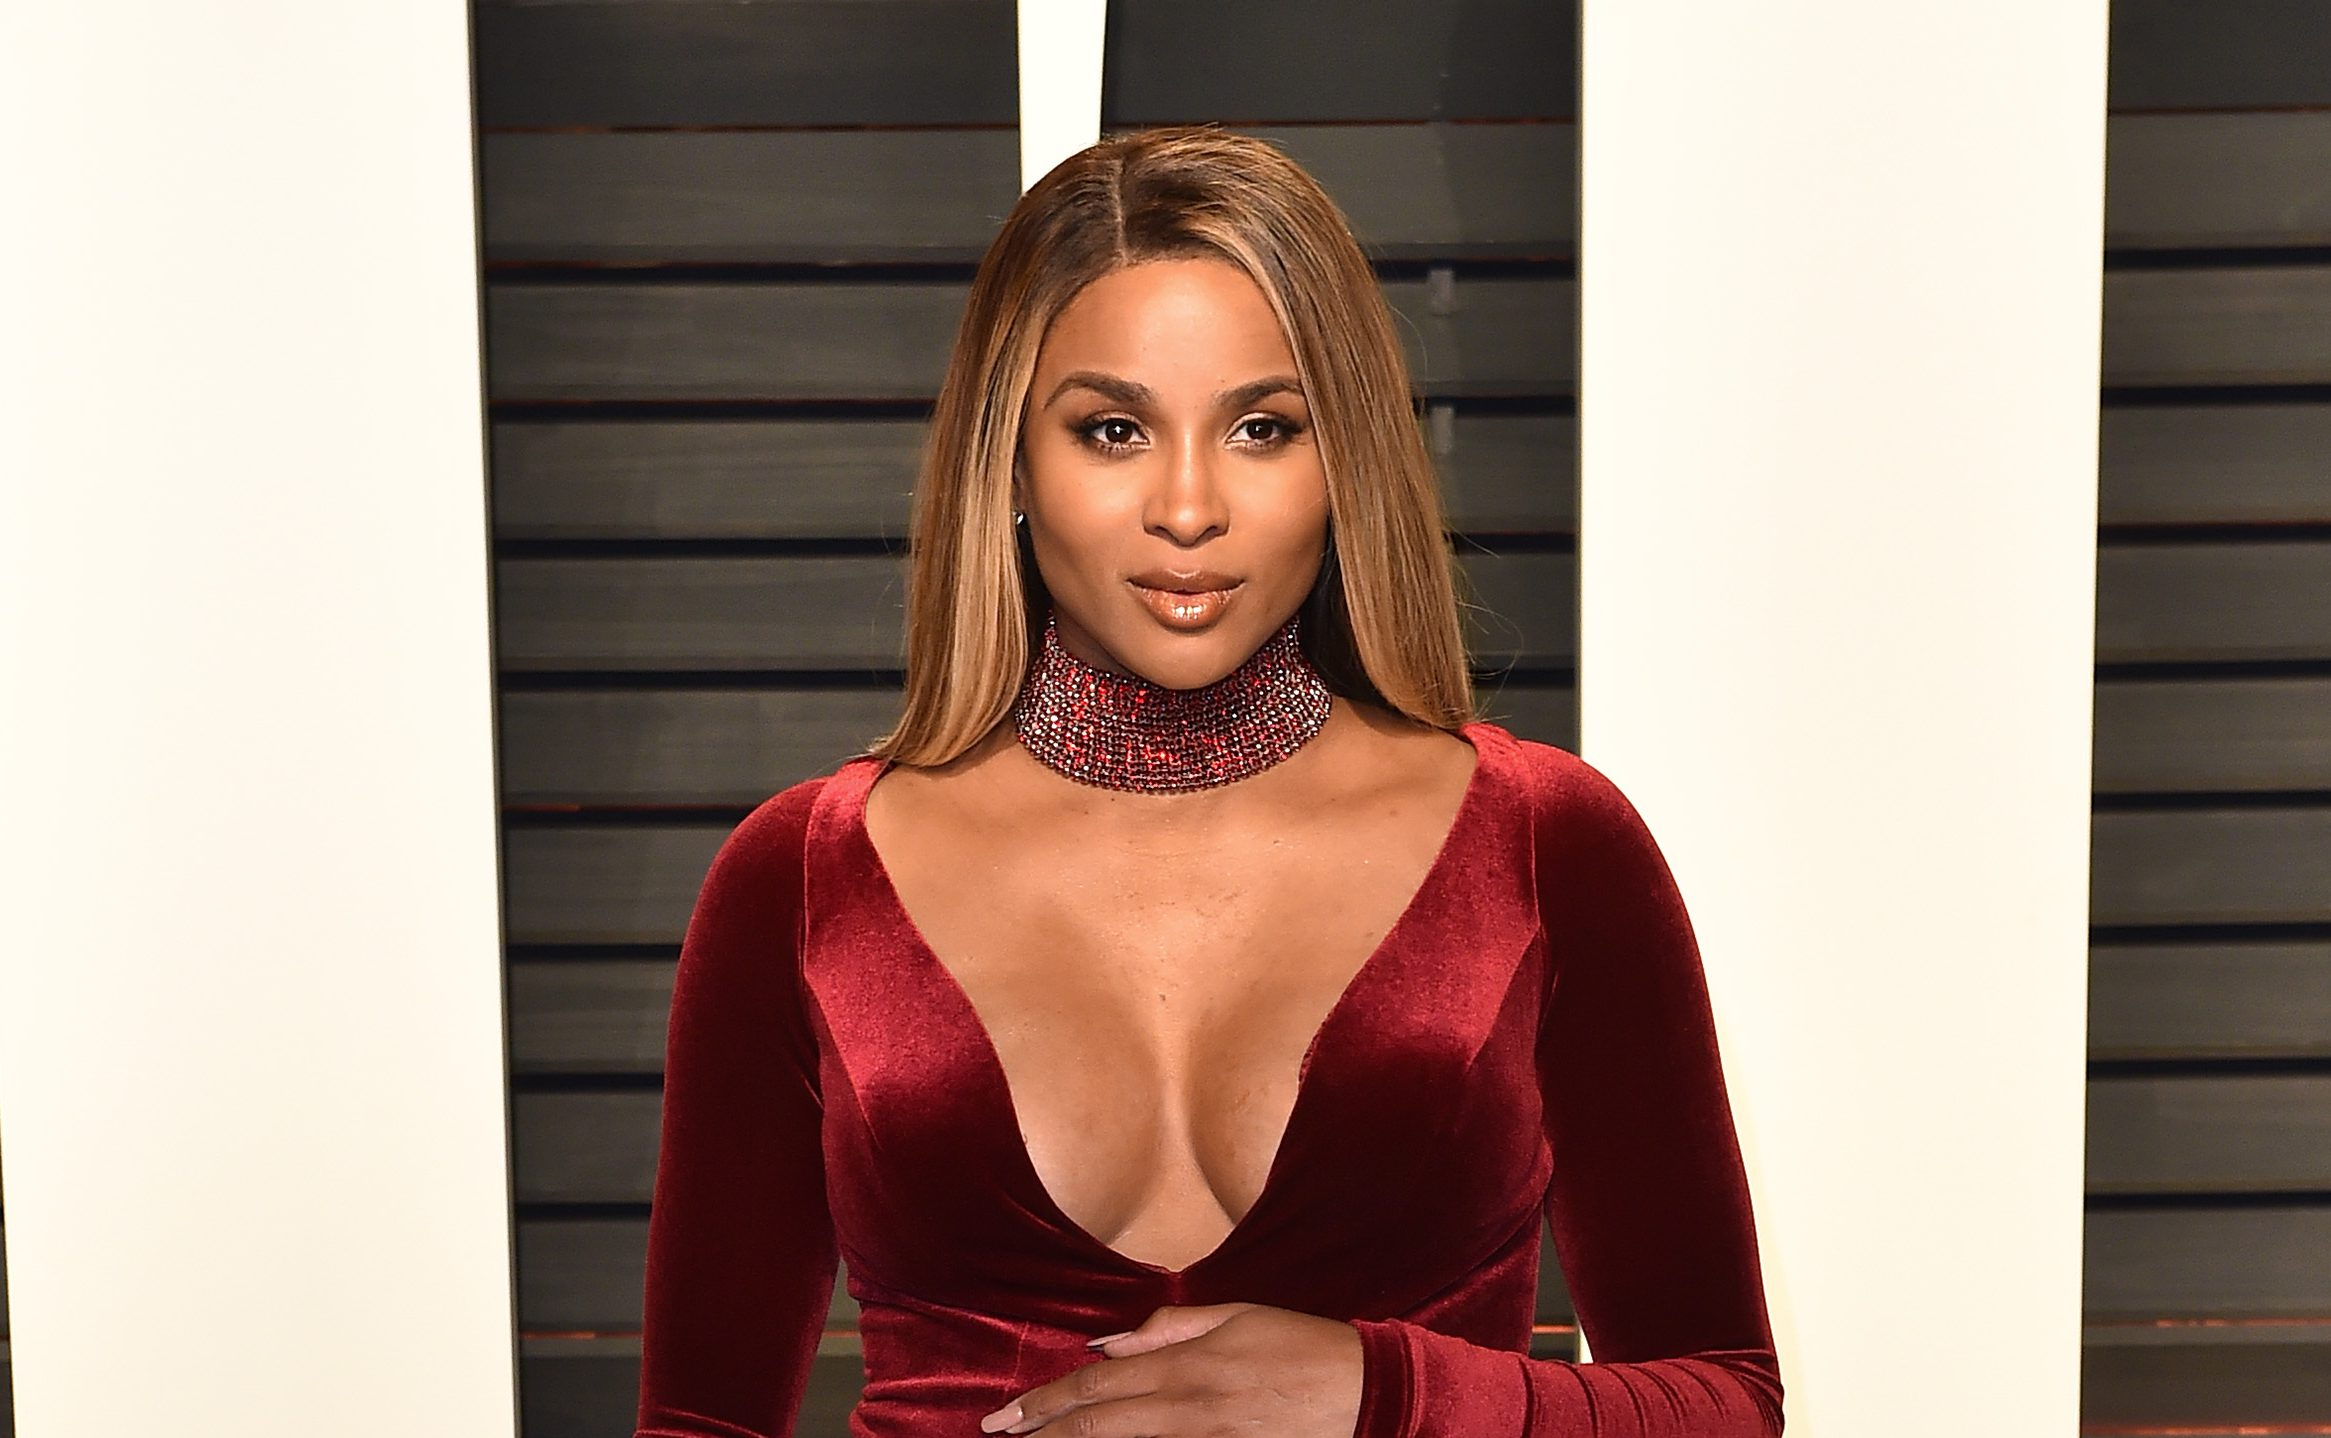 Pregnant singer Ciara involved in car crash when SUV 'slammed' into her vehicle